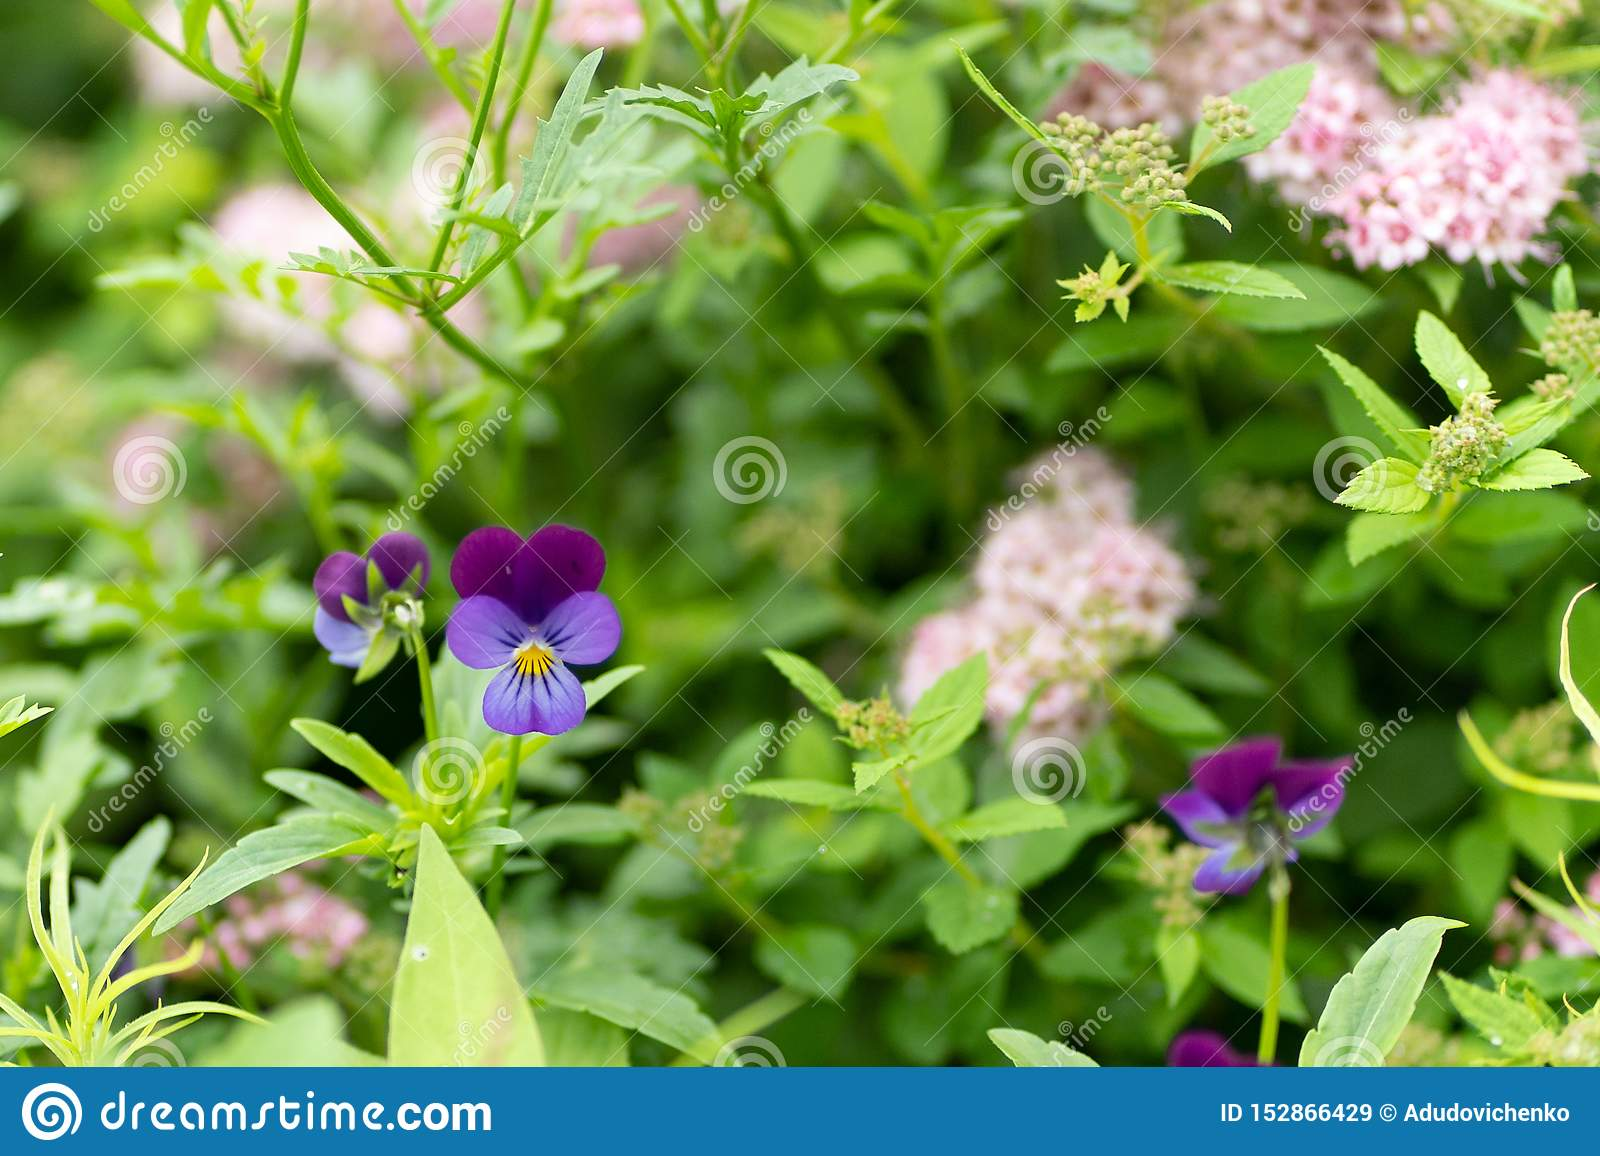 Photo of purple flowers against leafs background